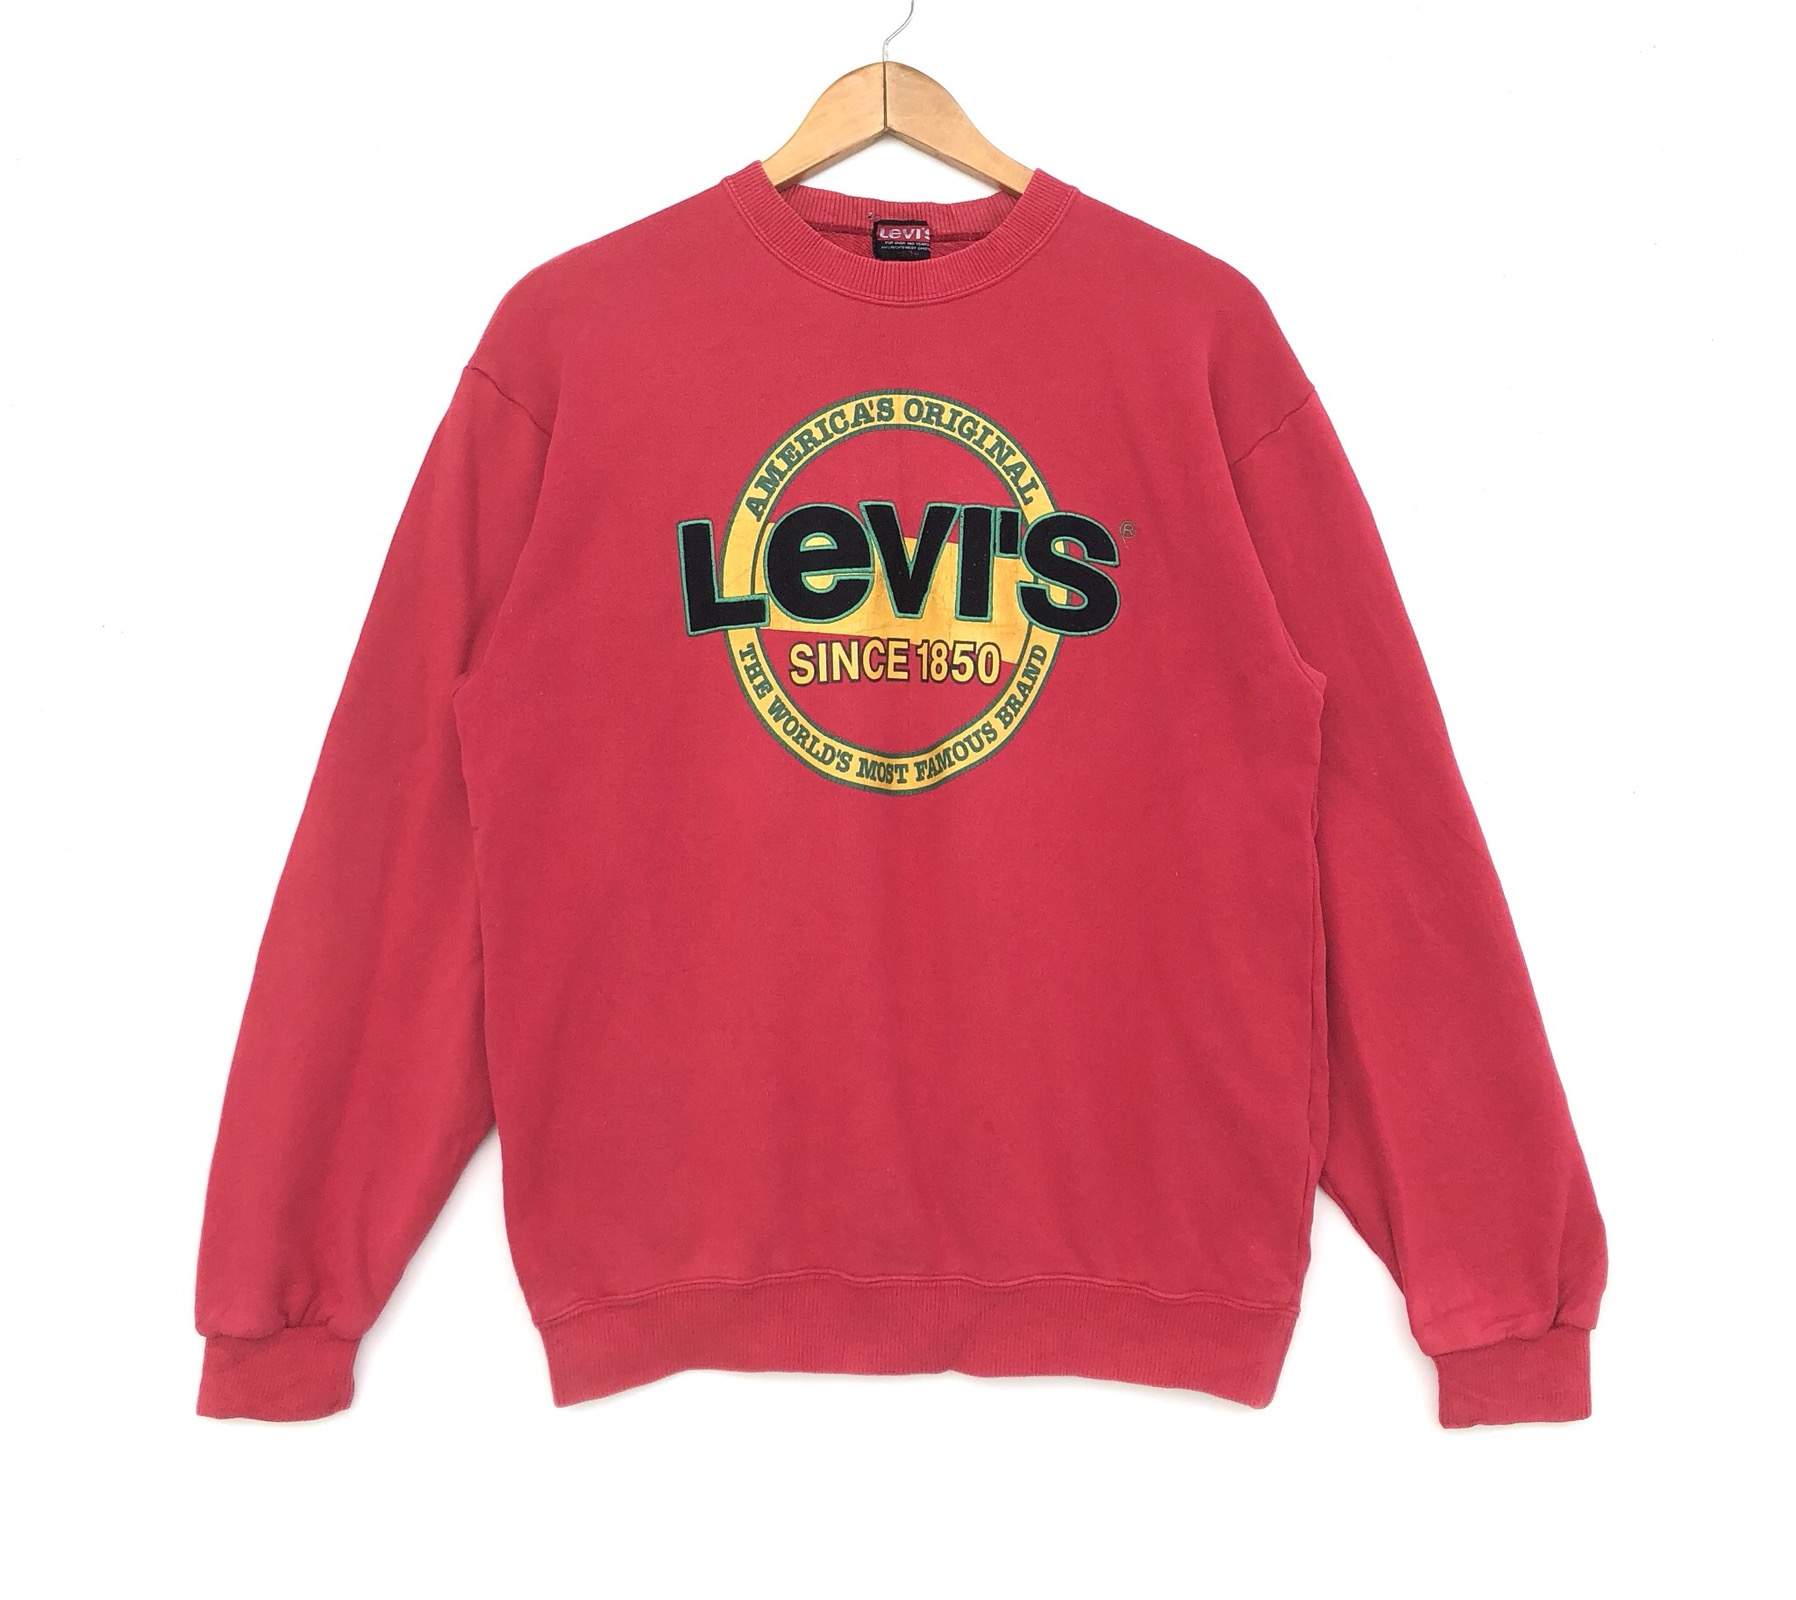 d7a70d7f629 Vintage Levis Sweatshirt Big Logo Sweater Jumper Medium Size Red Colour  Pullover Jacket Shirt Hoodie Sweat Sweater Vintage 90's